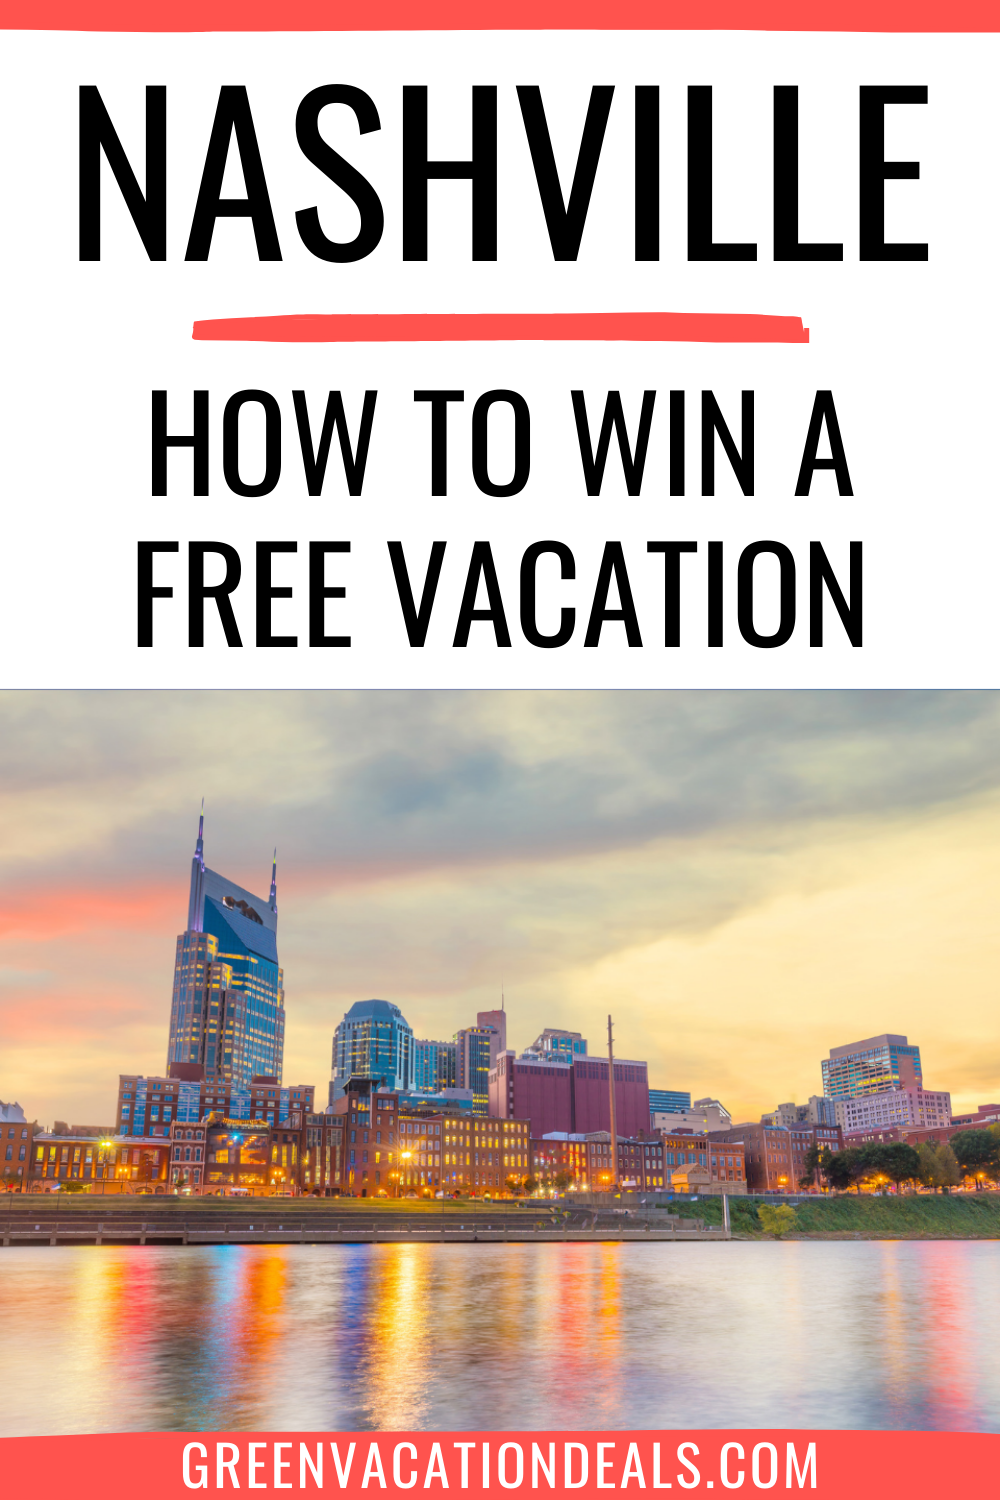 Nashville travel sweepstakes. Find out how to win a vacation in Tennessee. Enter Visit Music City: Good To Go Giveaway to win free airfare, Omni hotel stay, attraction passes, Chef's Tasting at E3 Chophouse, etc. Prize value=$2,850 #Nashville #Tennessee #MusicCity #VisitMusicCity #travel #travelforfree #freetravel #cheaptravel #budgettravel #budgettraveler #travelcheap #freetrip